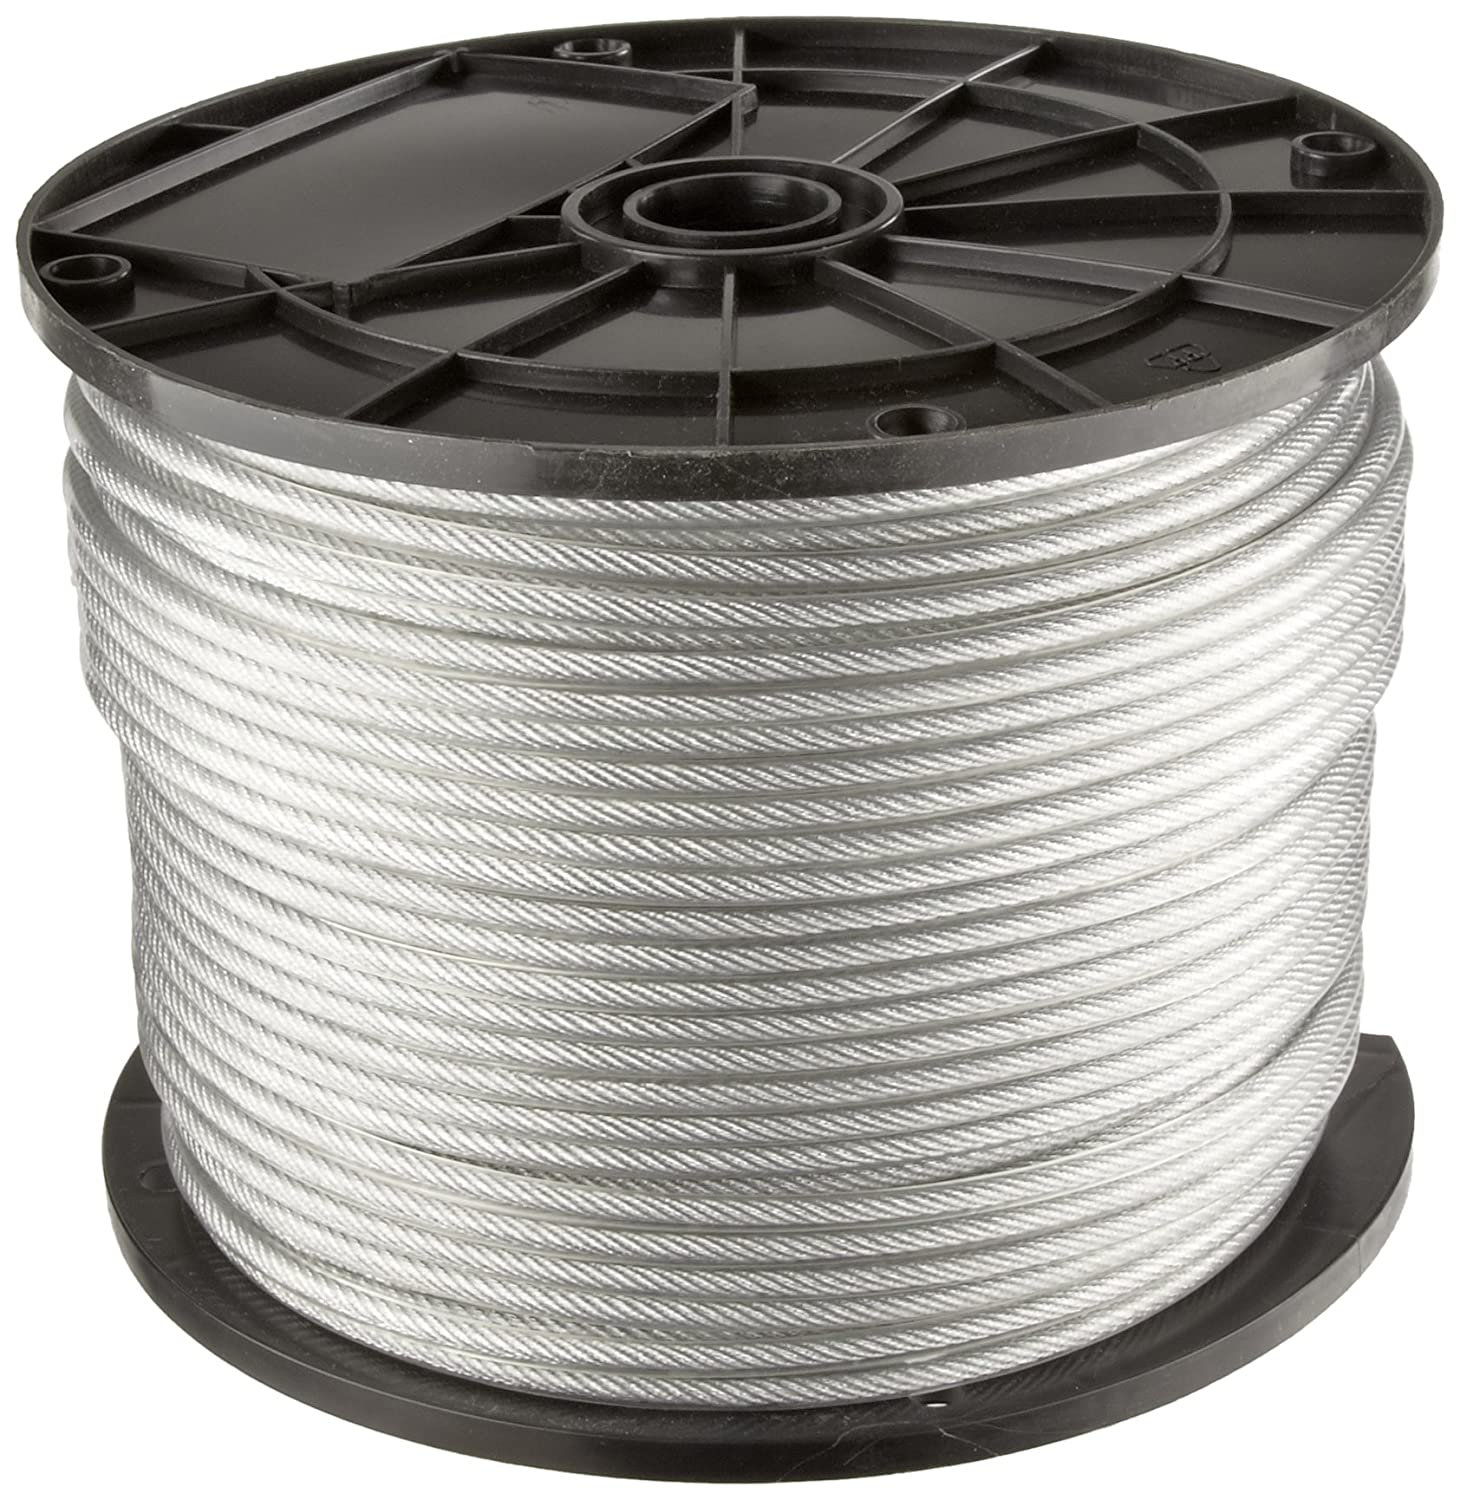 Galvanized Steel Wire Rope, Vinyl Coated, 7x7 Strand Core: Cable ...